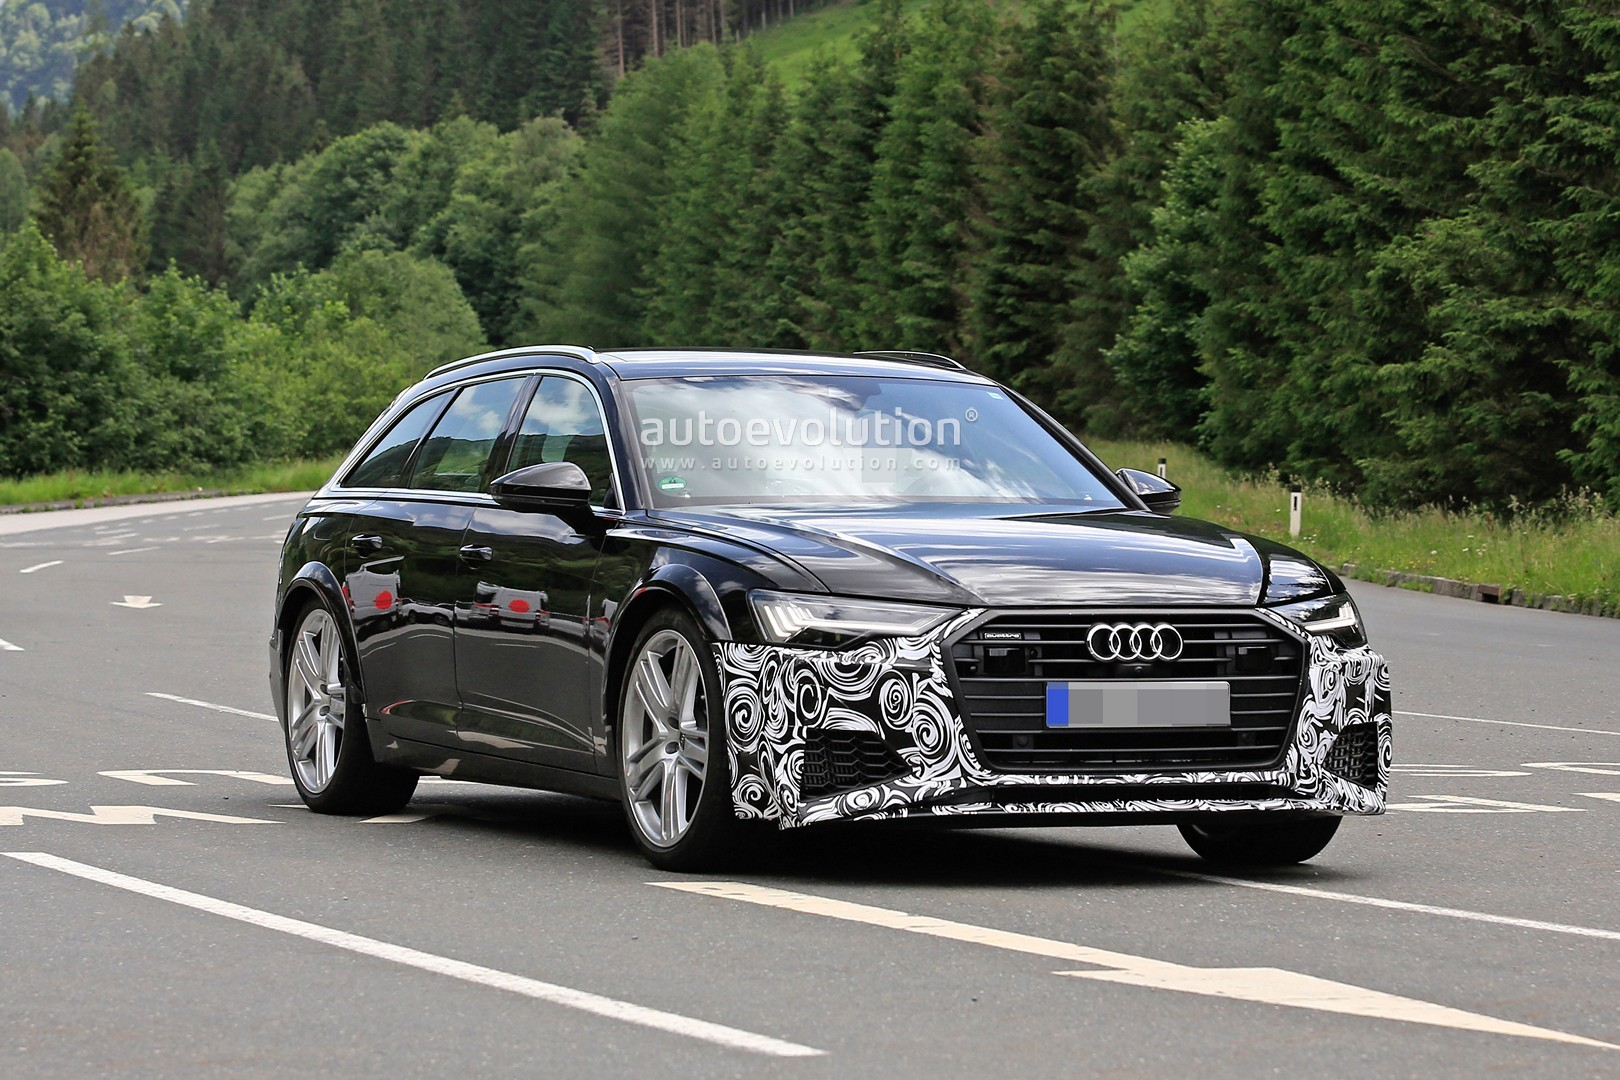 [Imagen: 2020-audi-rs6-avant-makes-spy-photo-debut_1.jpg]